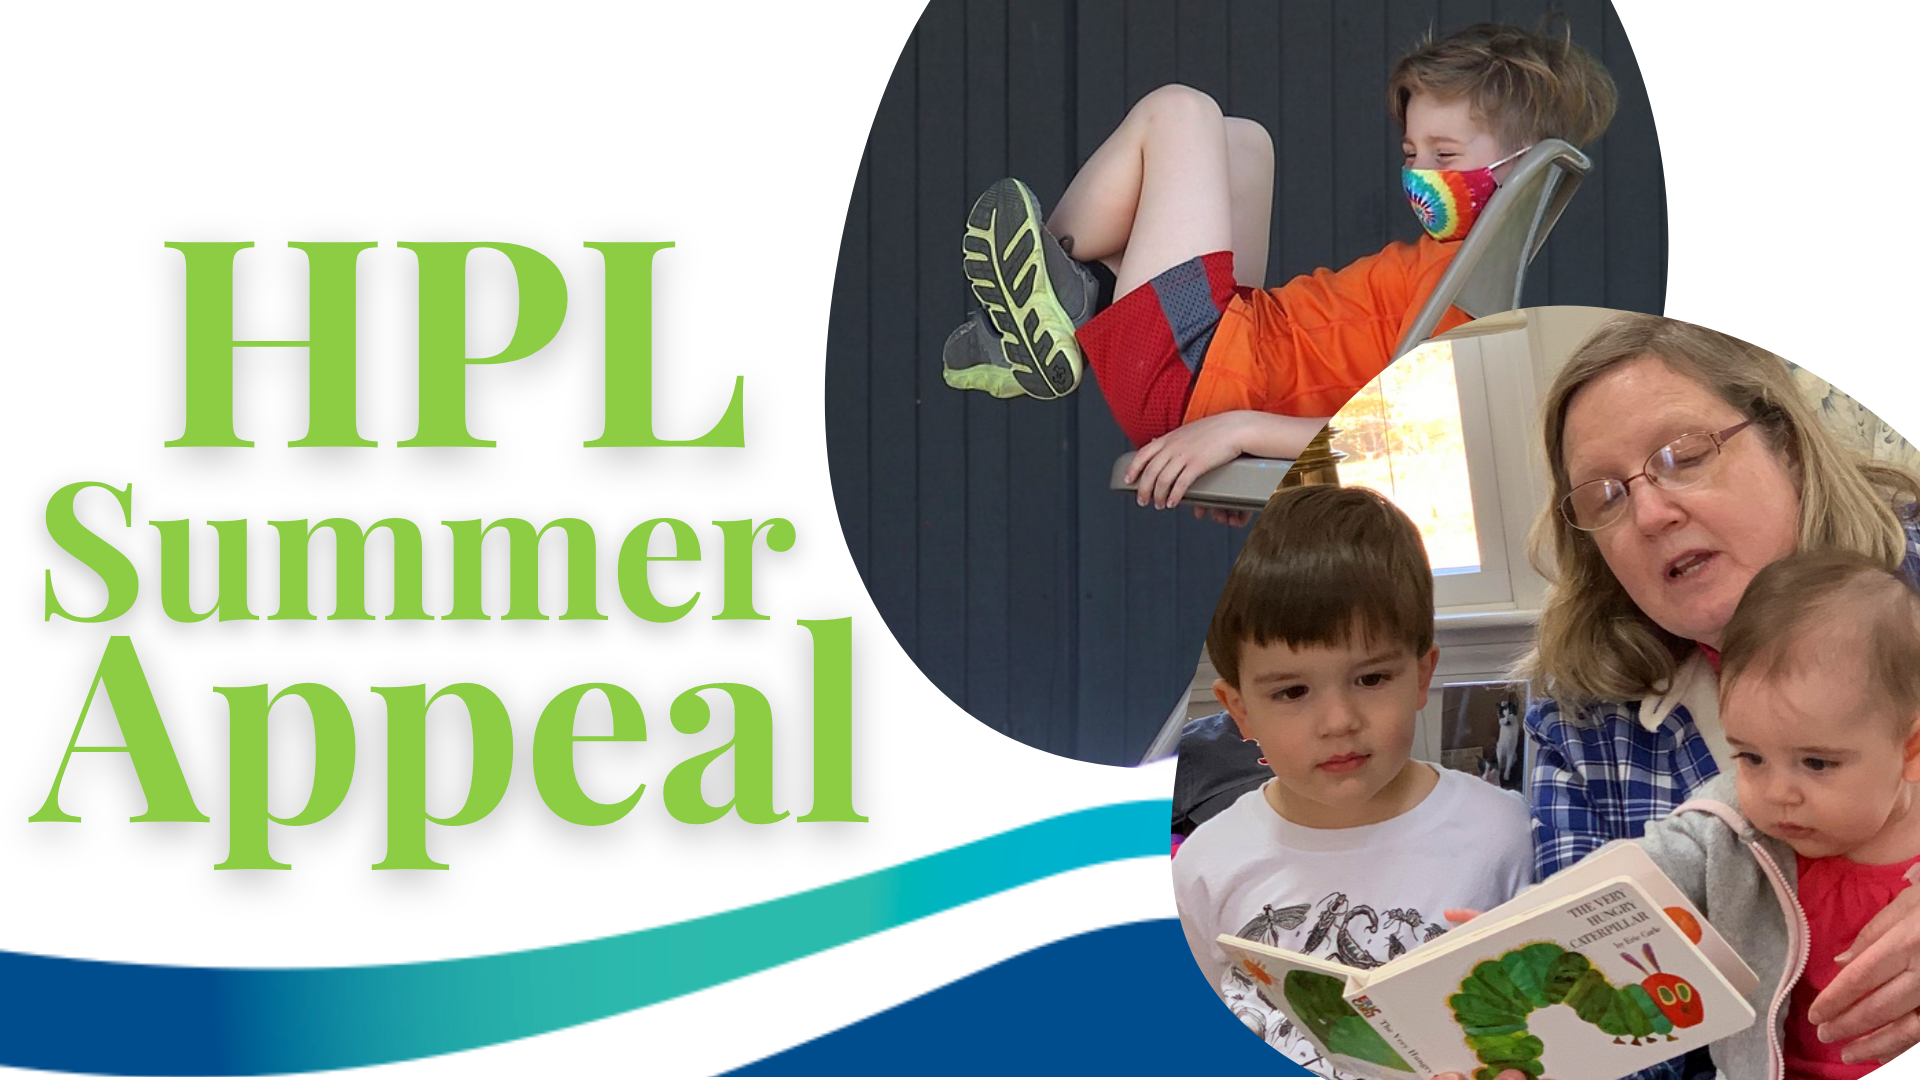 Summer Appeal title with pictures of children